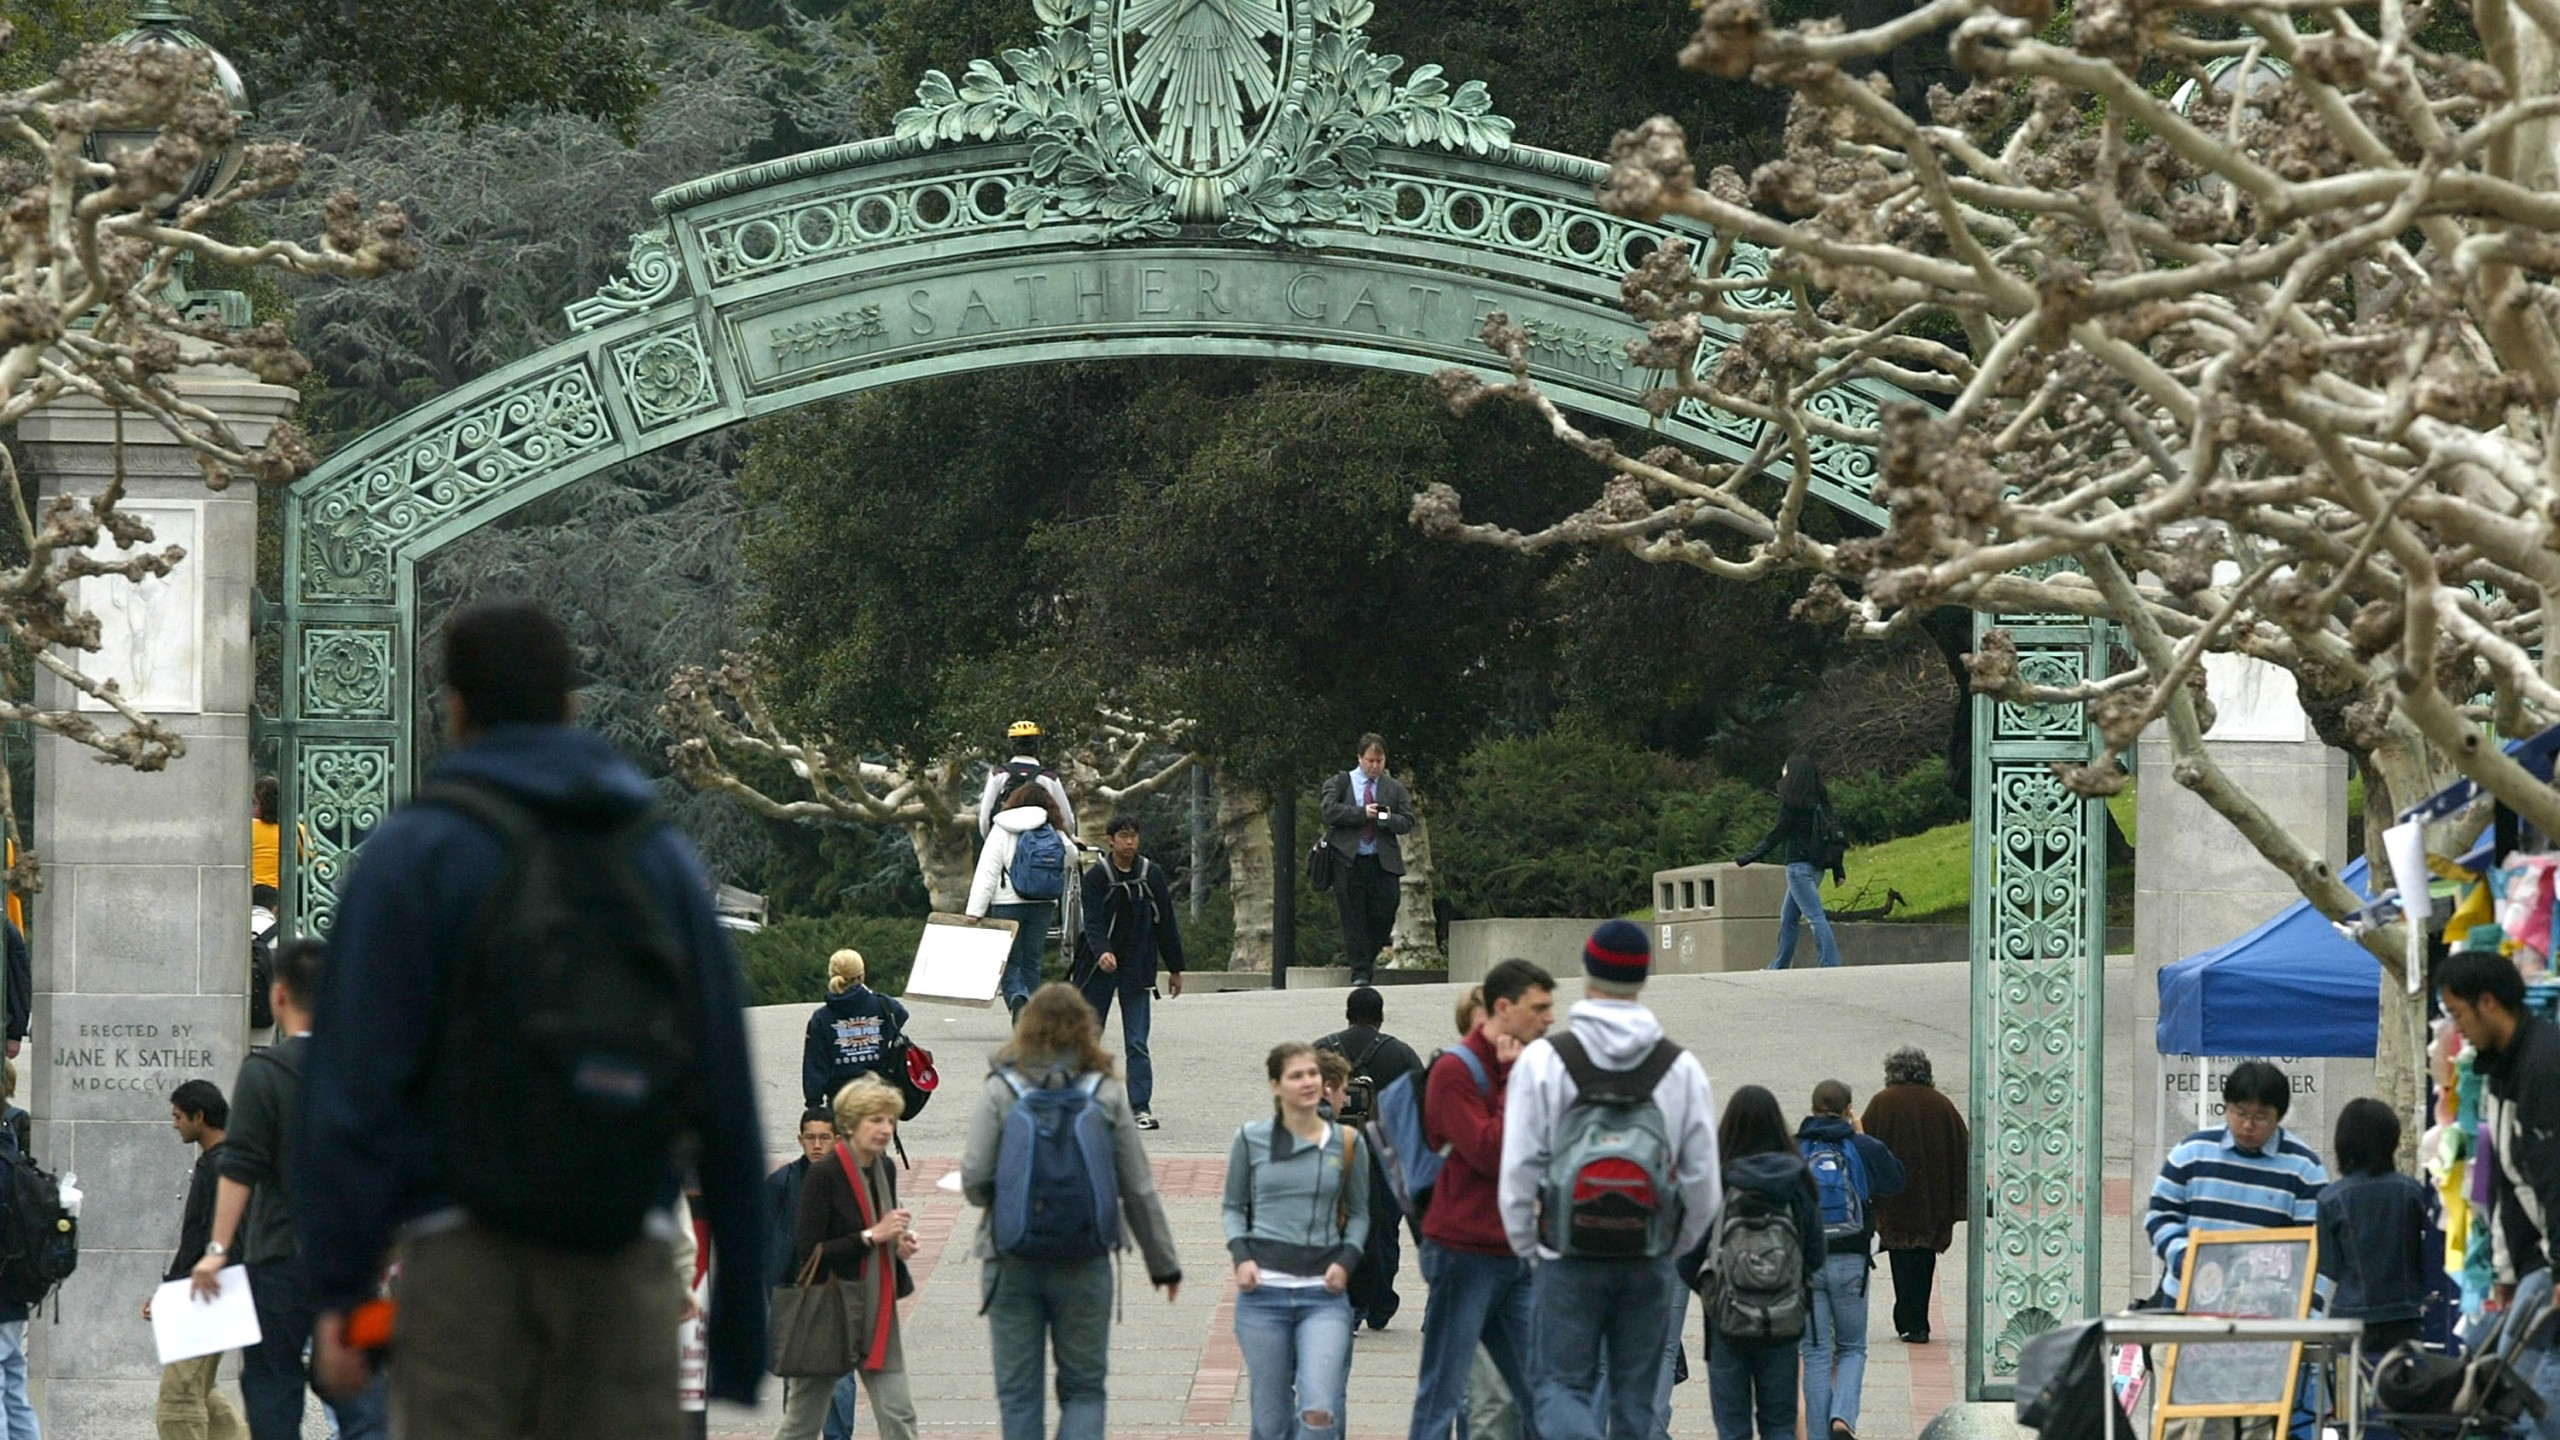 Students walk near Sather Gate on the University of California at Berkeley campus Feb. 24, 2005, in Berkeley. (Justin Sullivan/Getty Images)